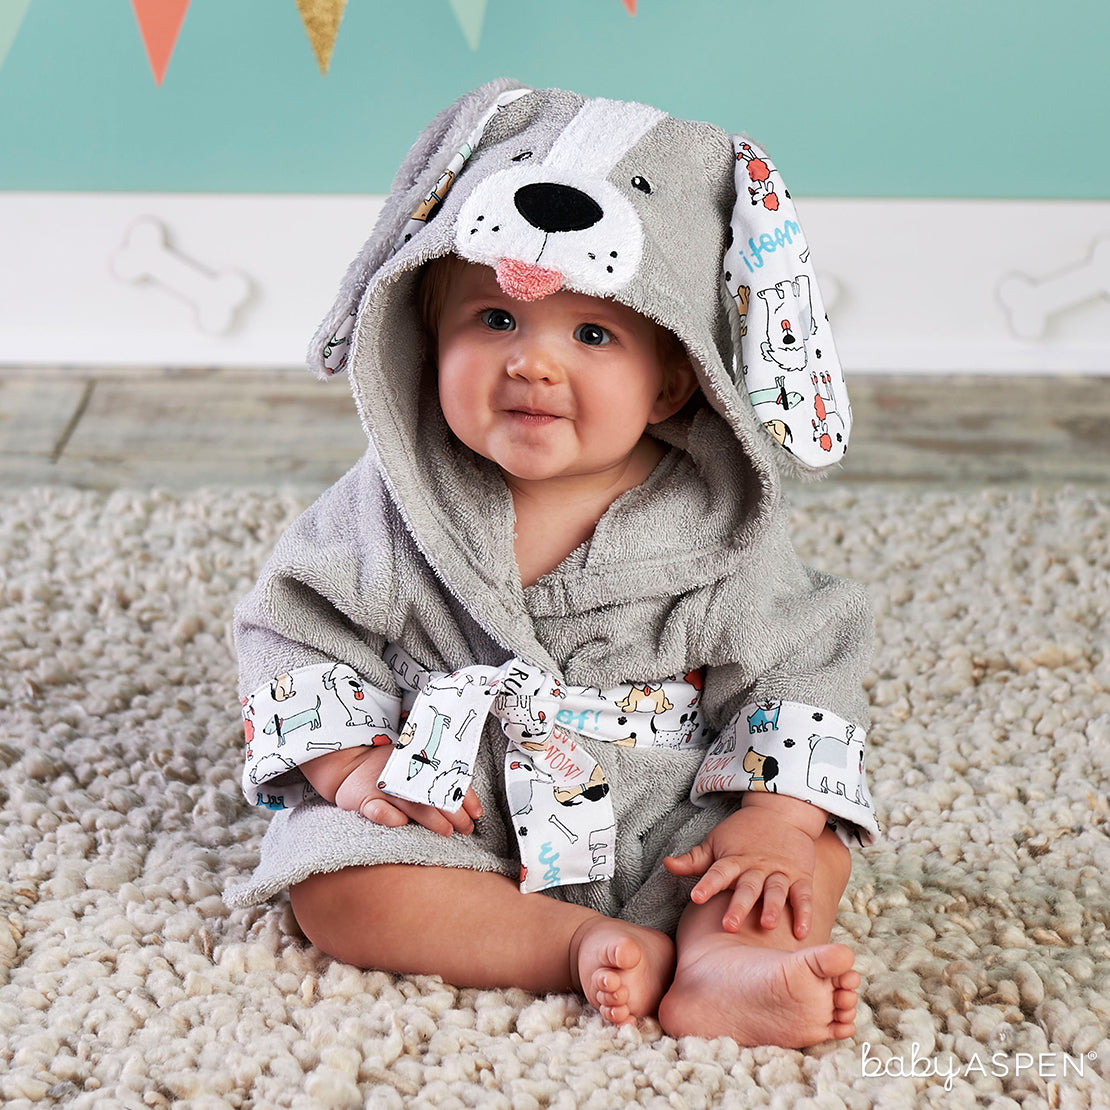 Puppy Hooded Robe | 6 Gifts for a Puppy Themed Baby Shower | Baby Aspen